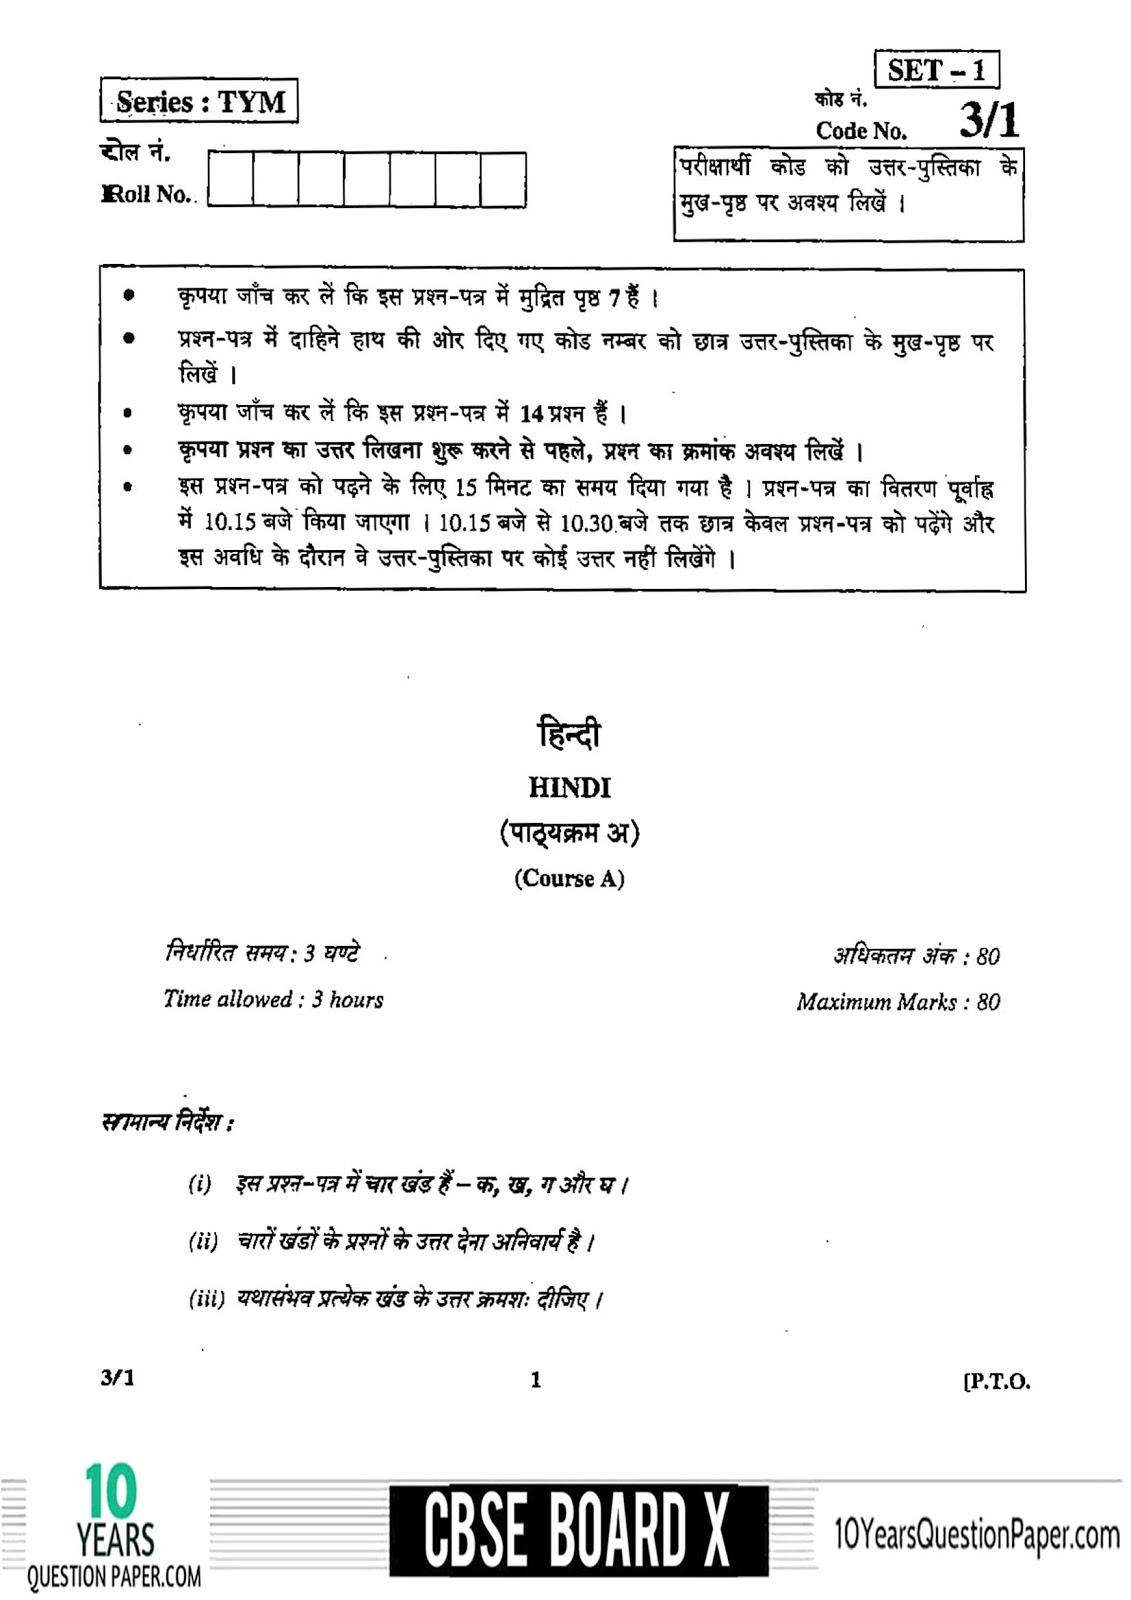 CBSE Board 2018 Hindi Course A Question paper Class 10 Page-01